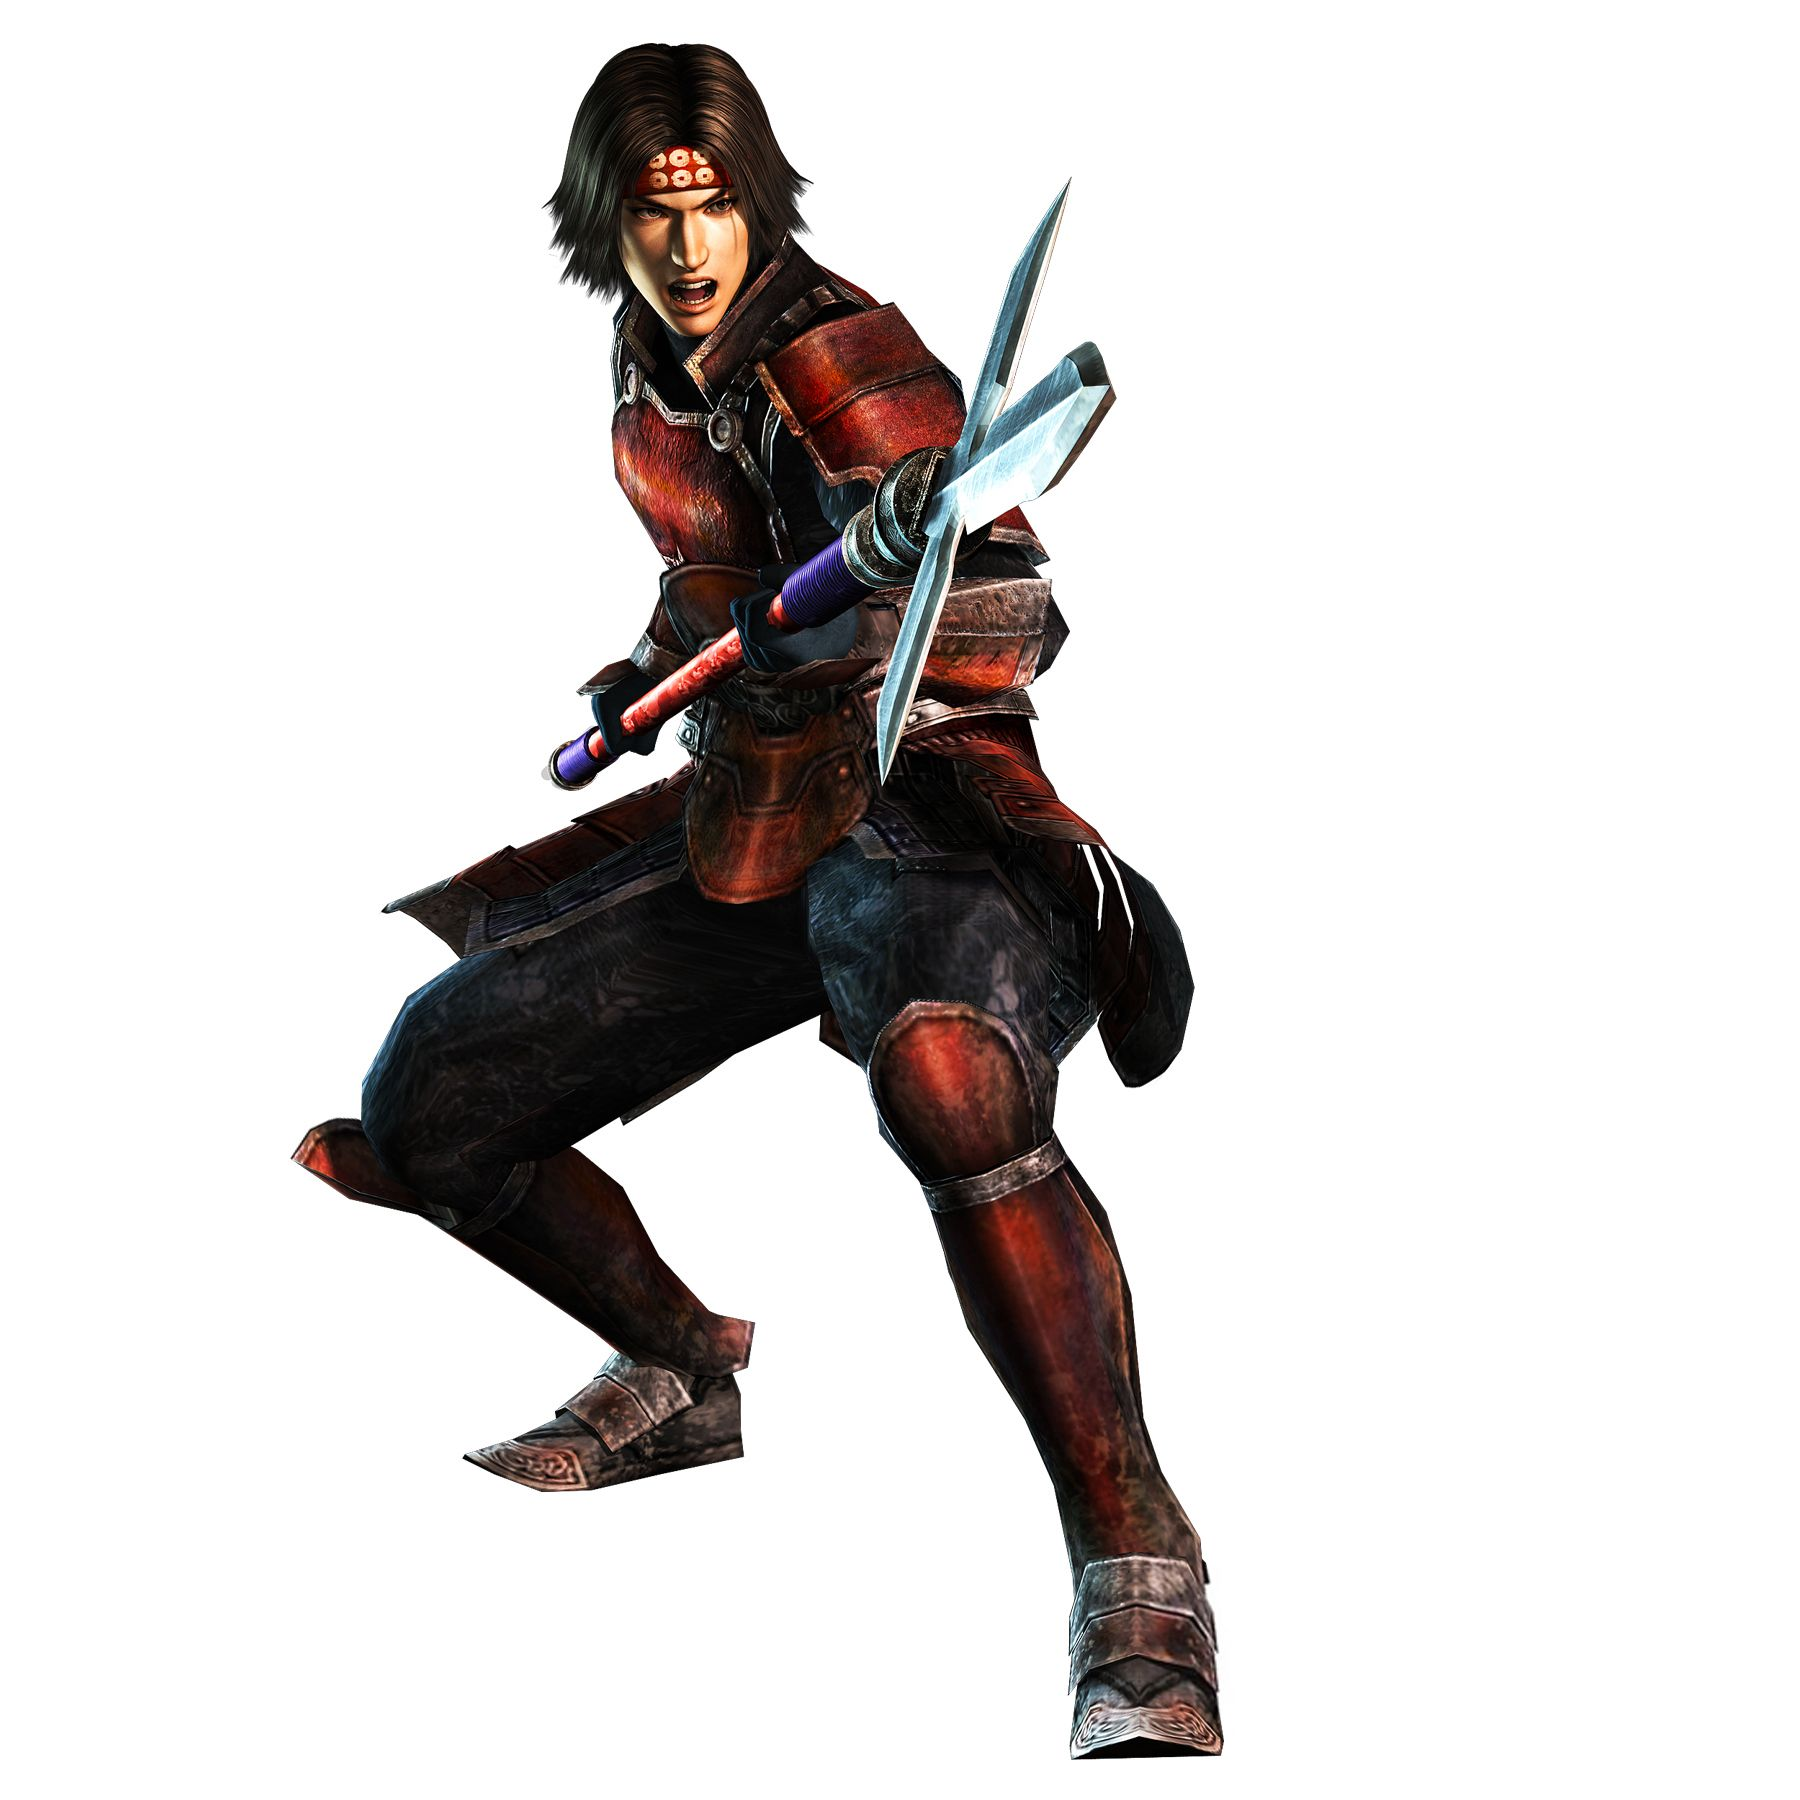 Warriors Orochi 3 Ultimate Delete Save Data: Yukimura Sanada (Samurai Warriors)